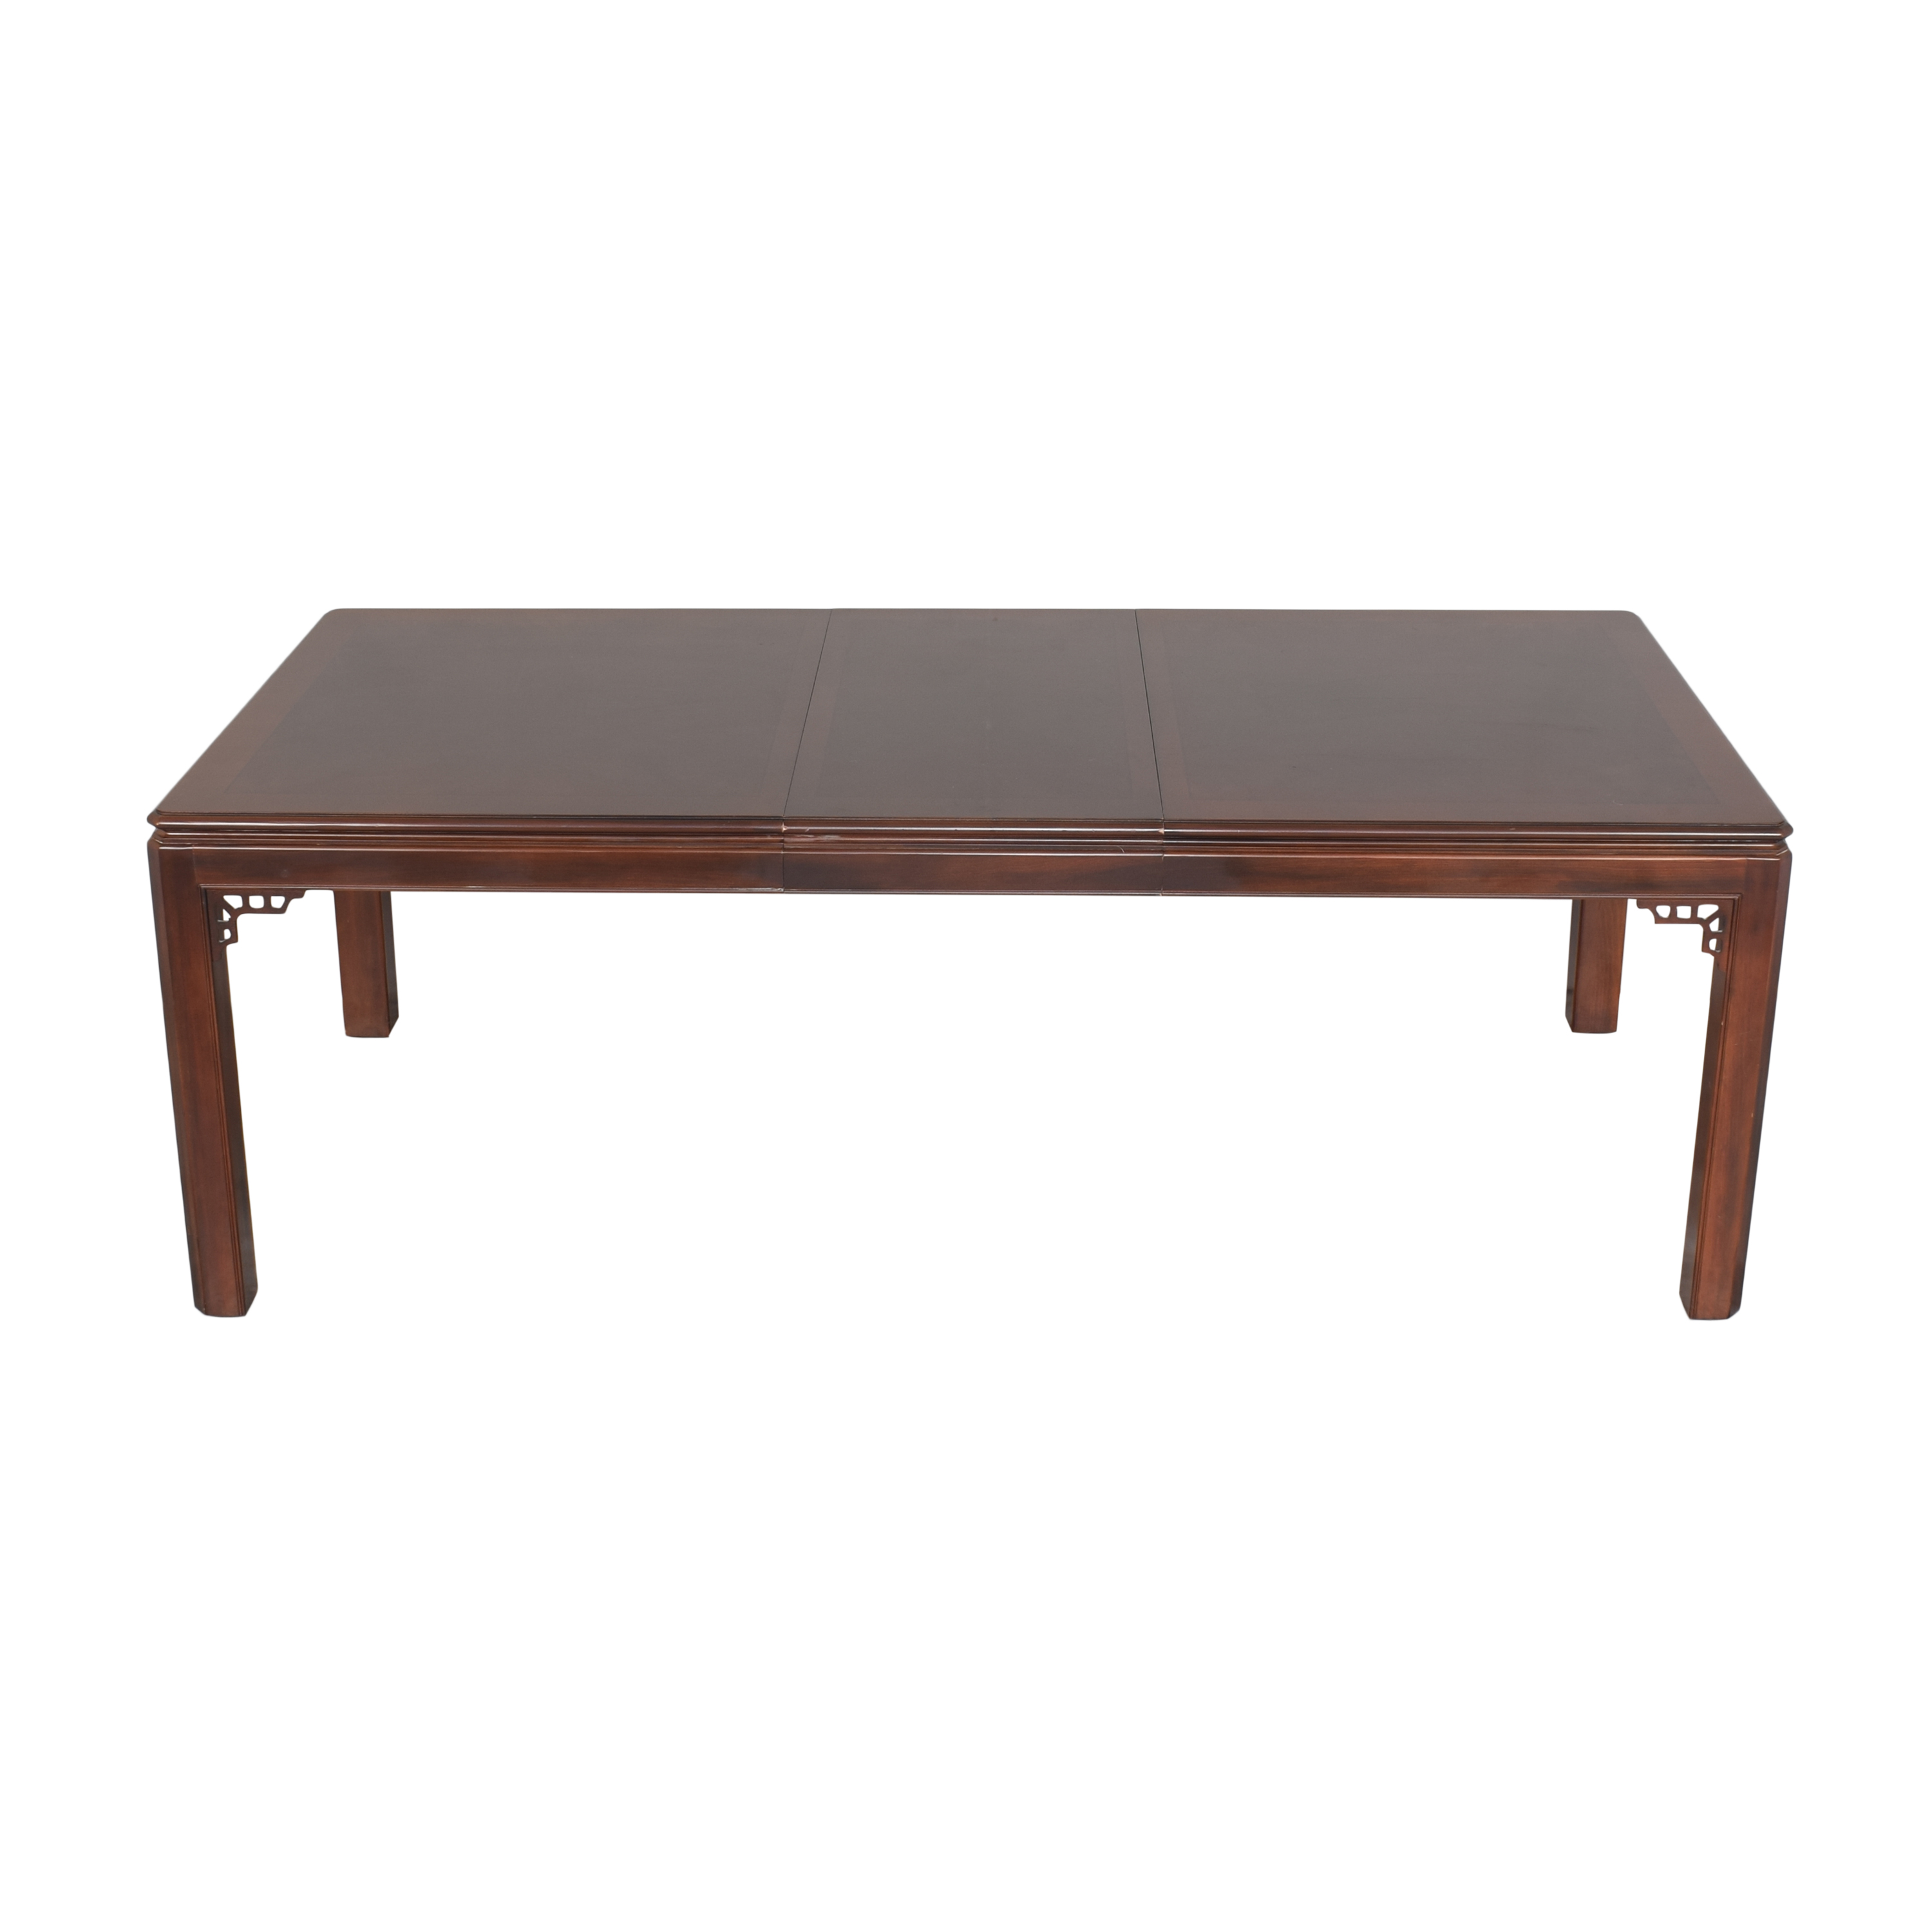 Drexel Drexel Chippendale Extendable Dining Table ma